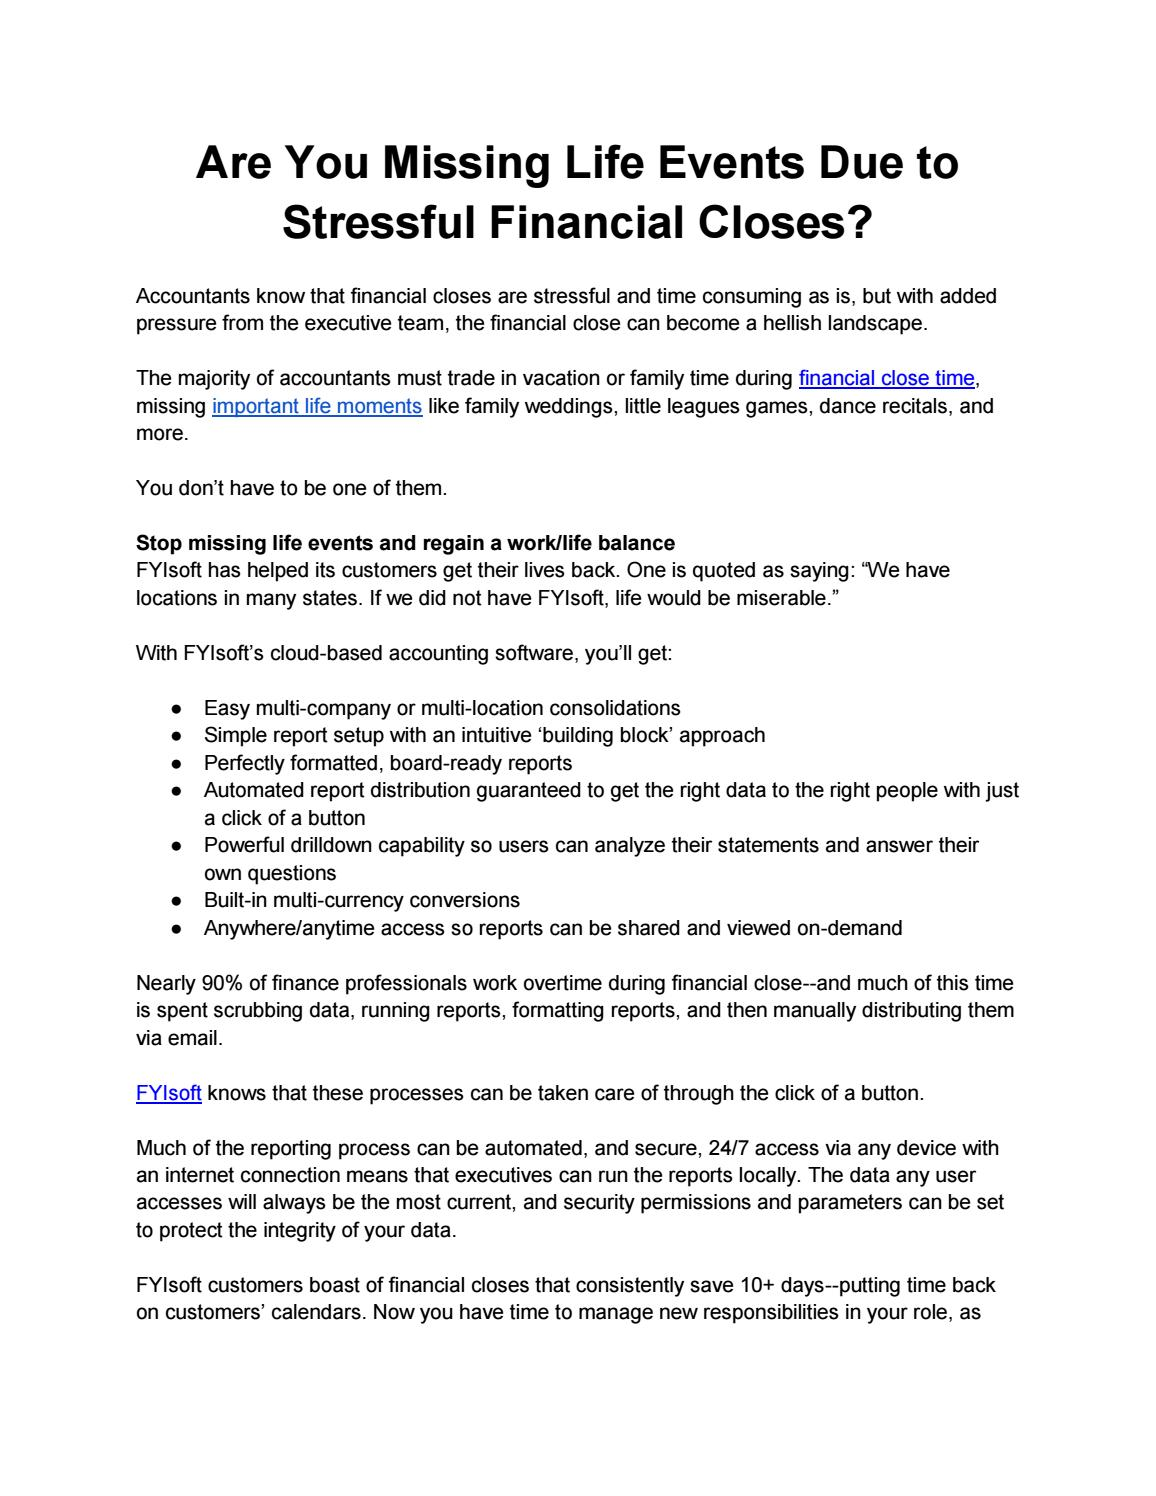 Are You Missing Life Events Due to Stressful Financial